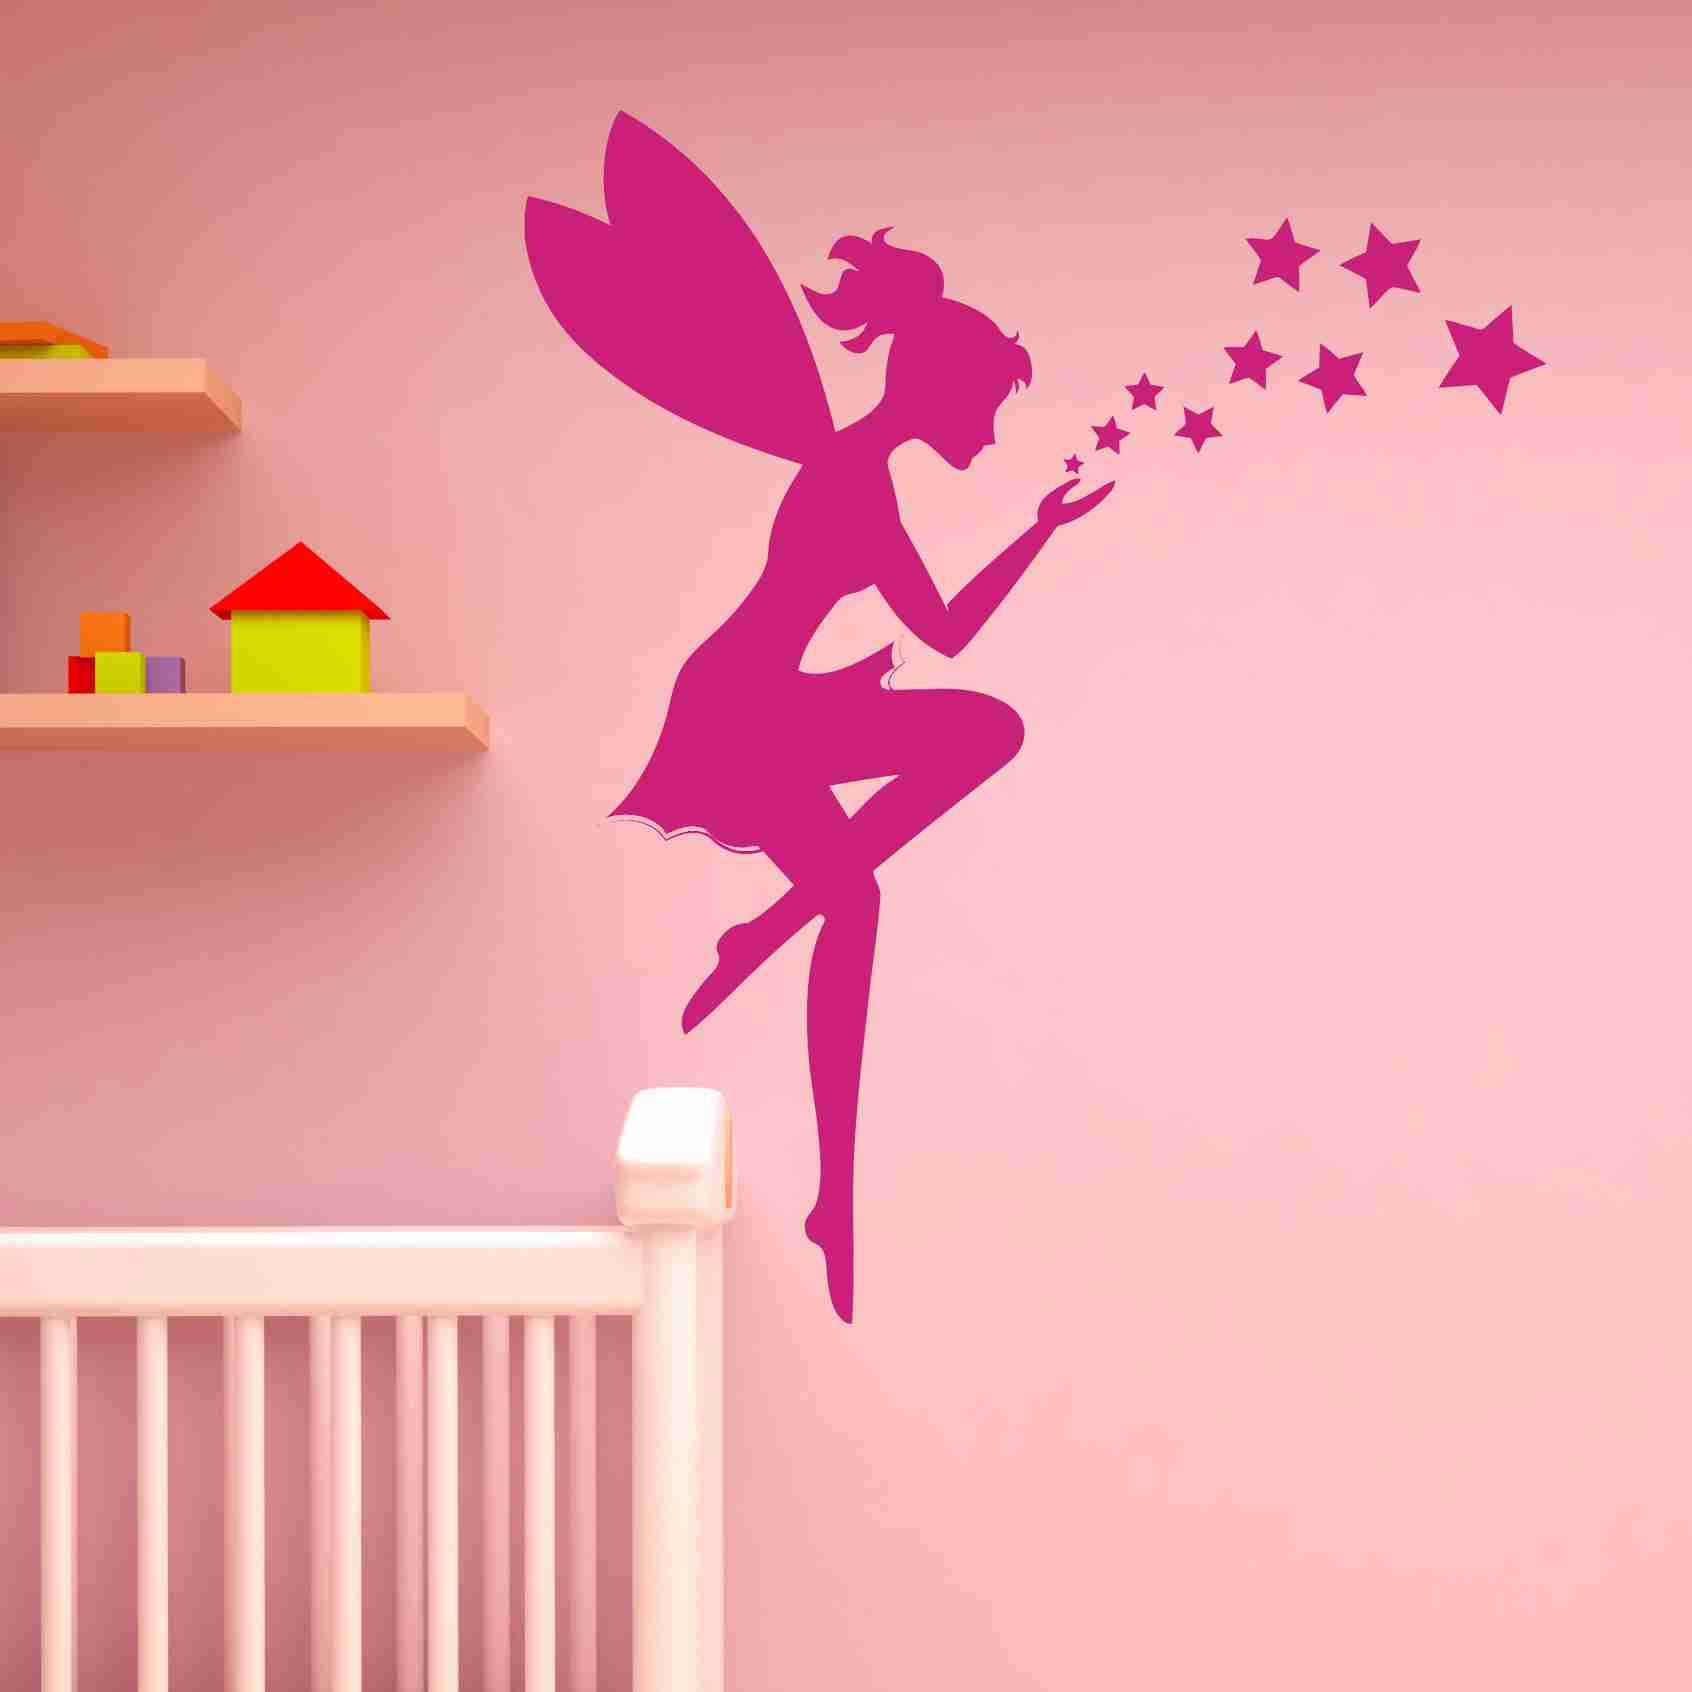 Fairy And Stars Wall Decal Sticker Girls Room Vinyl Wall Art - How do you put up vinyl wall decals